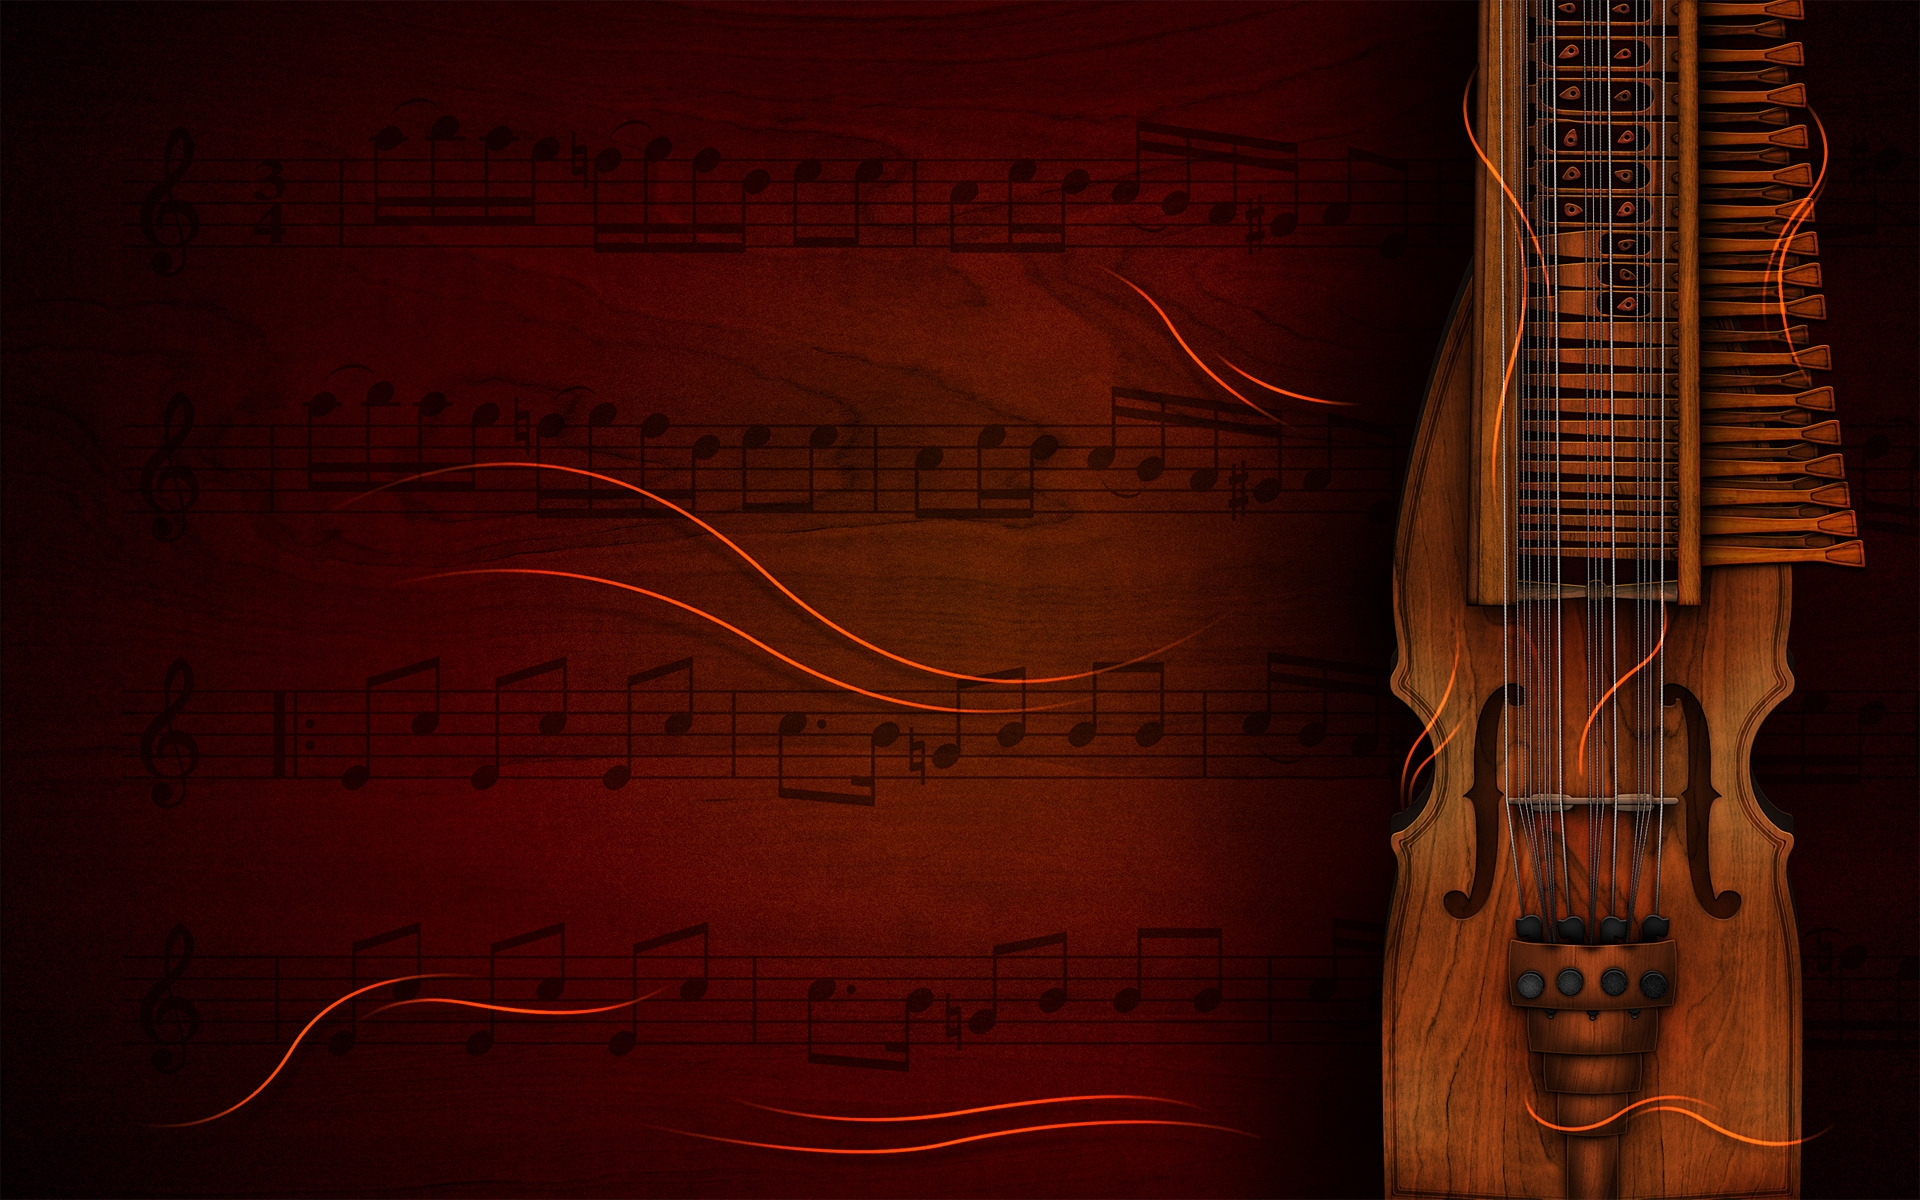 Wallpaper de Música Clásica - Wallpapers